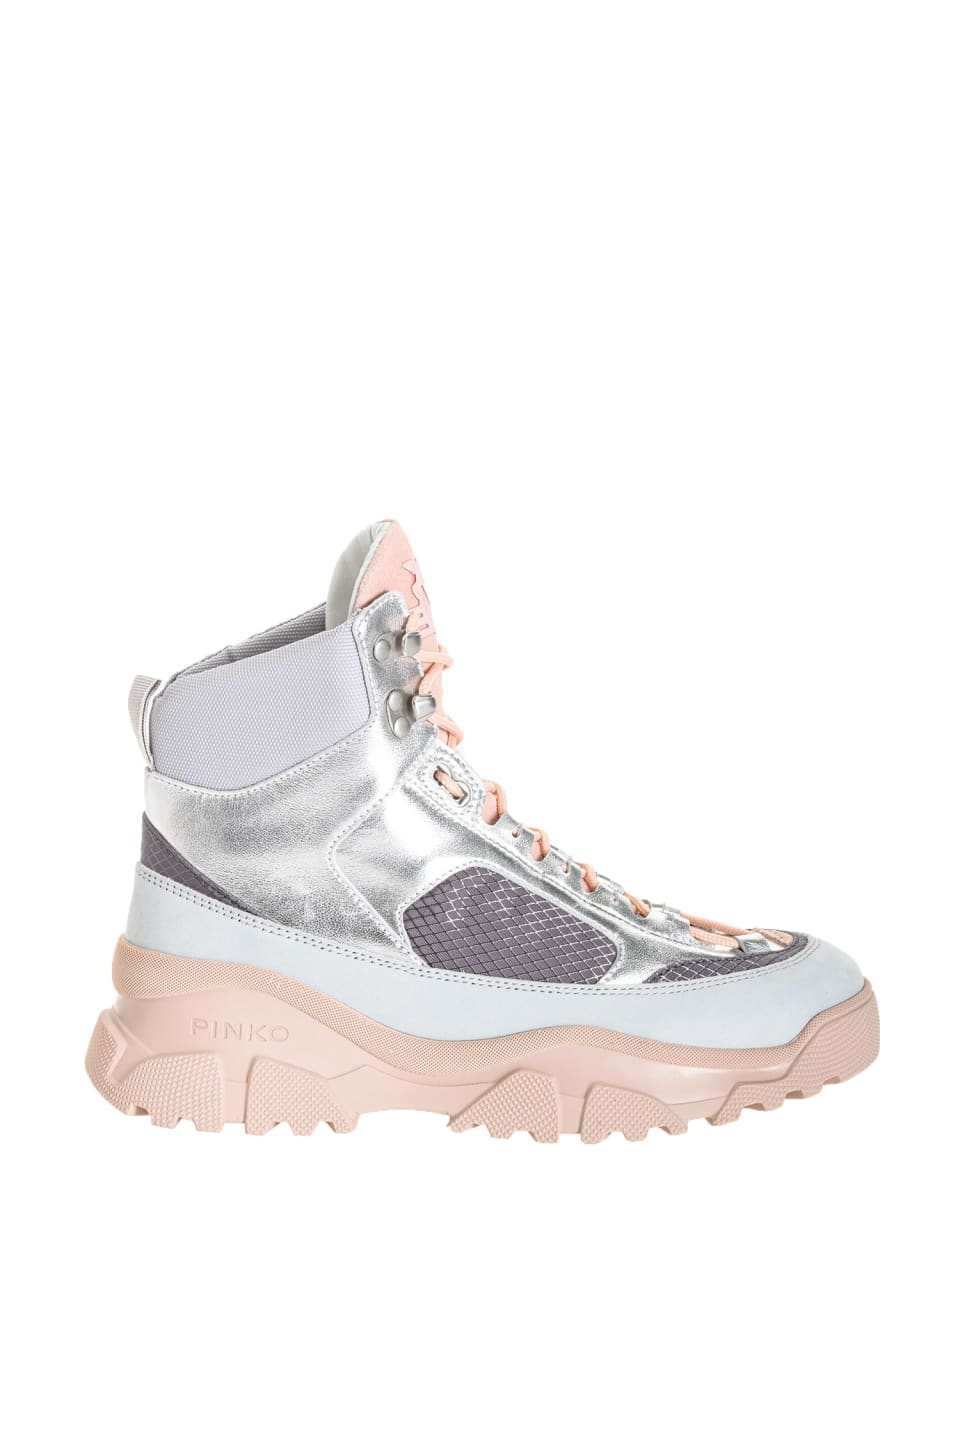 Laminated High Trek Sneakers - Pinko